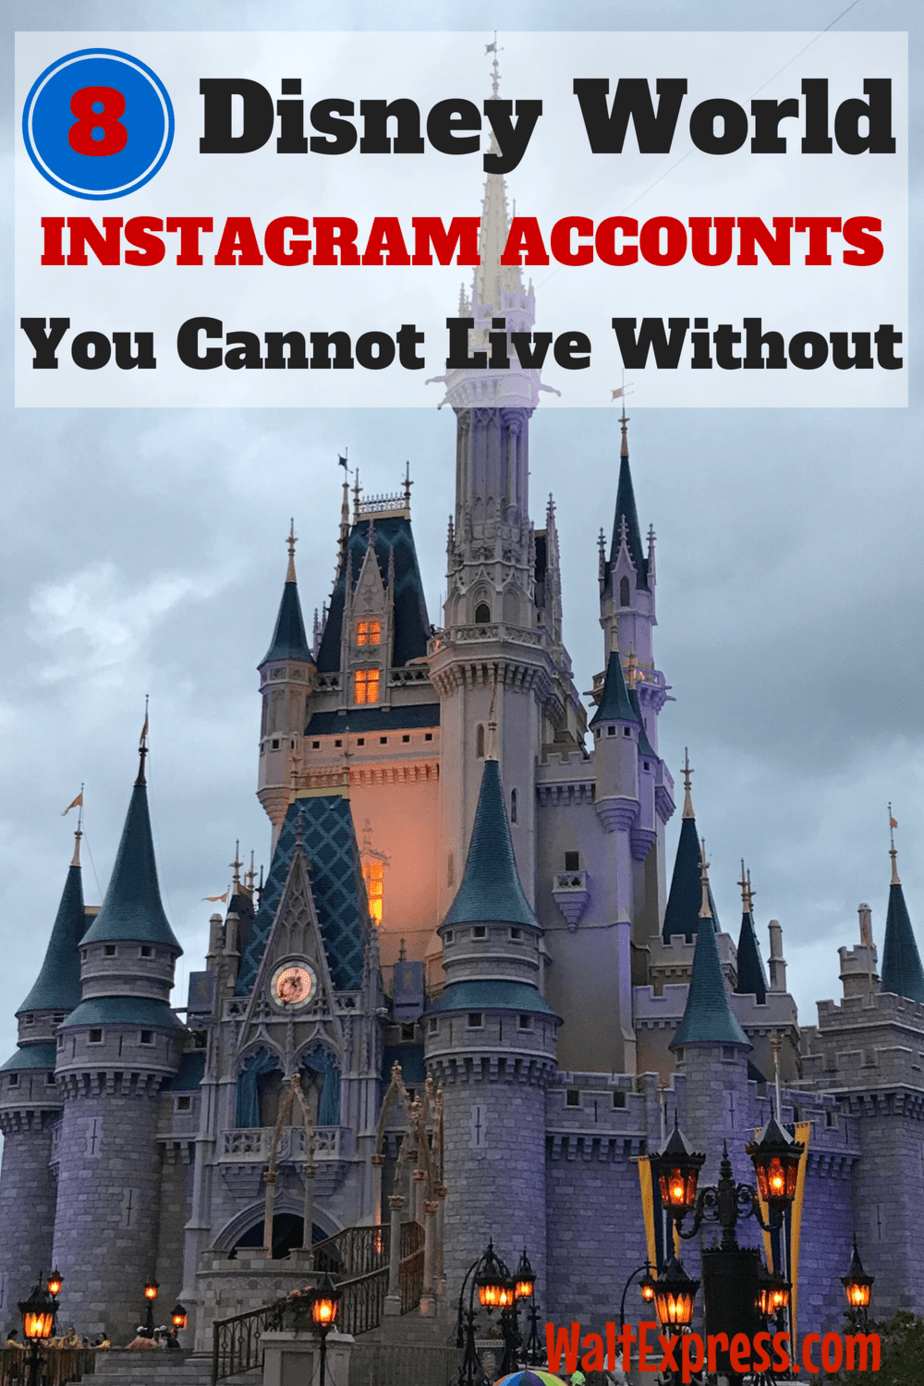 8 Disney World Instagram Accounts You Cannot Live Without